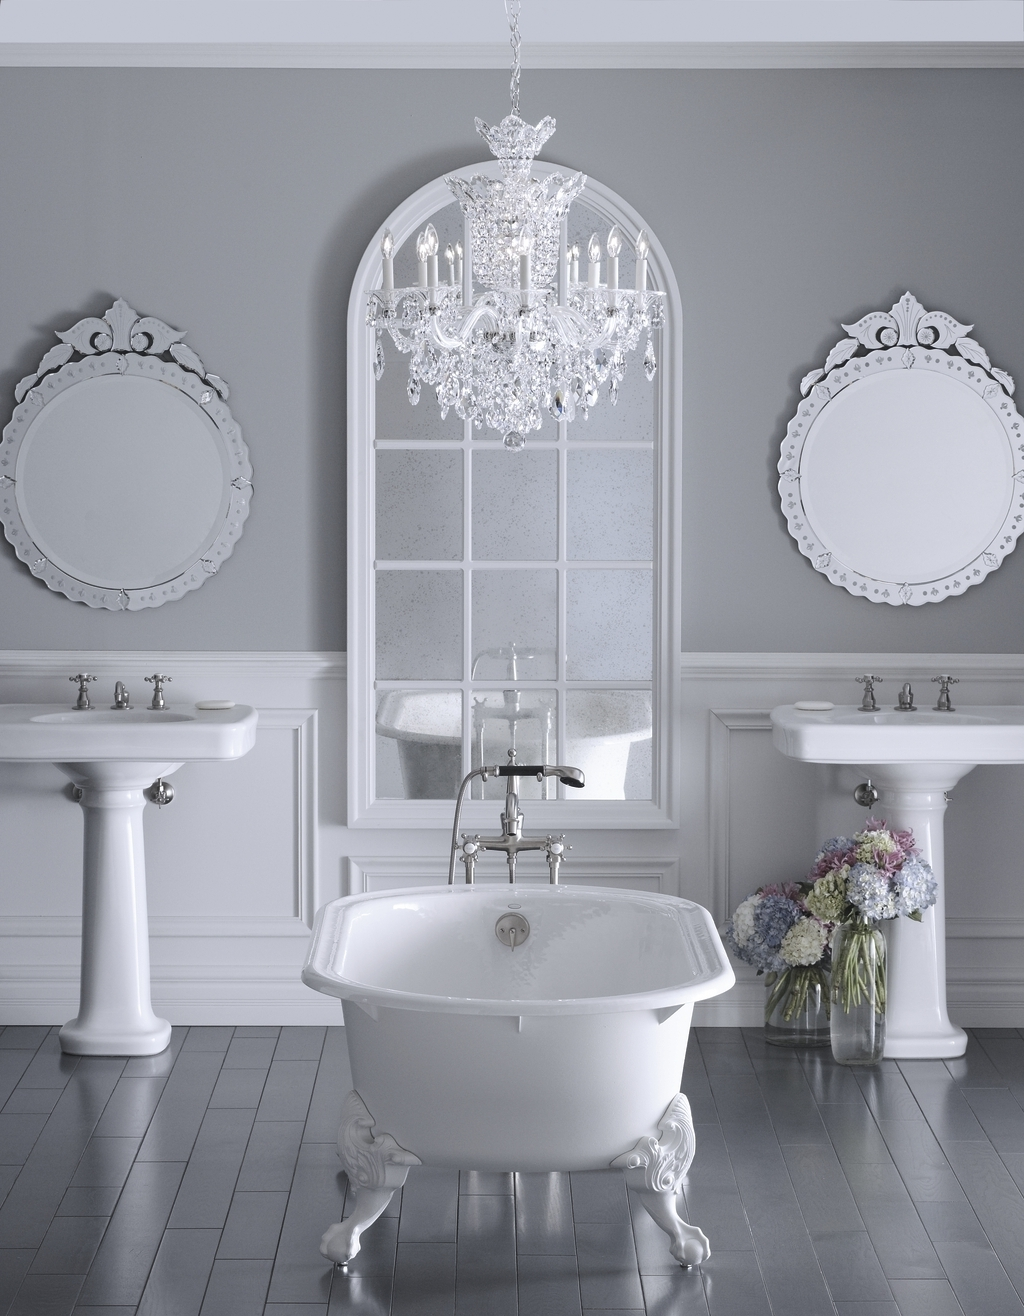 Bathroom Chandelier Lighting Pertaining To Popular Chandeliers Design : Fabulous Wondrous Bathtub Photos Glamorous (View 19 of 20)